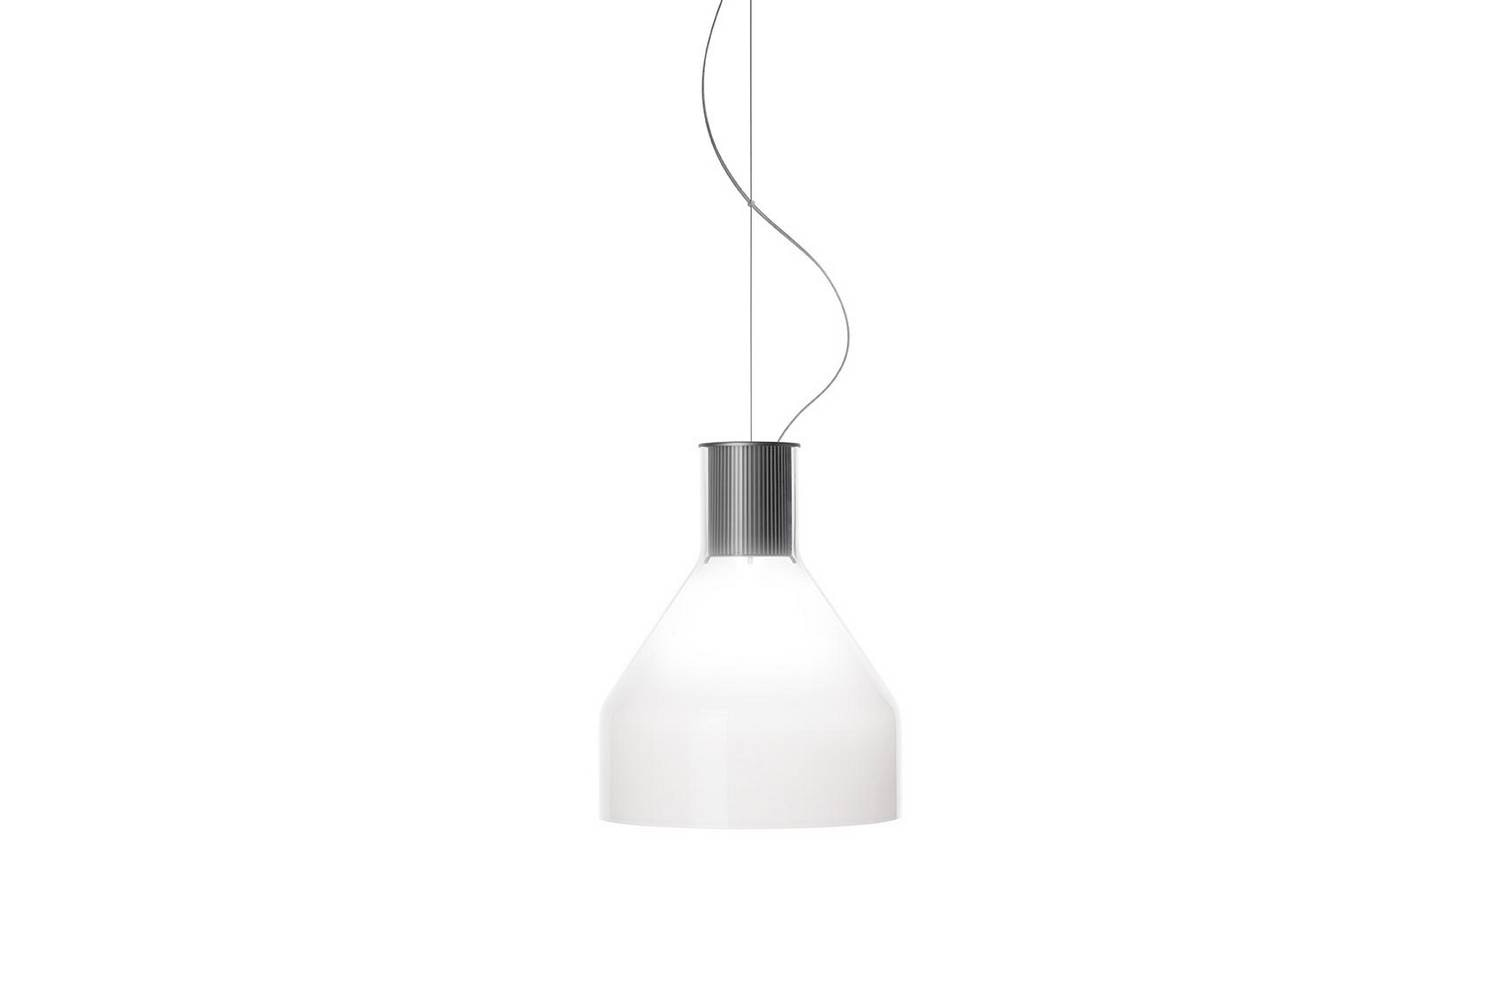 Caiigo Suspension Lamp by Marco Zito for Foscarini